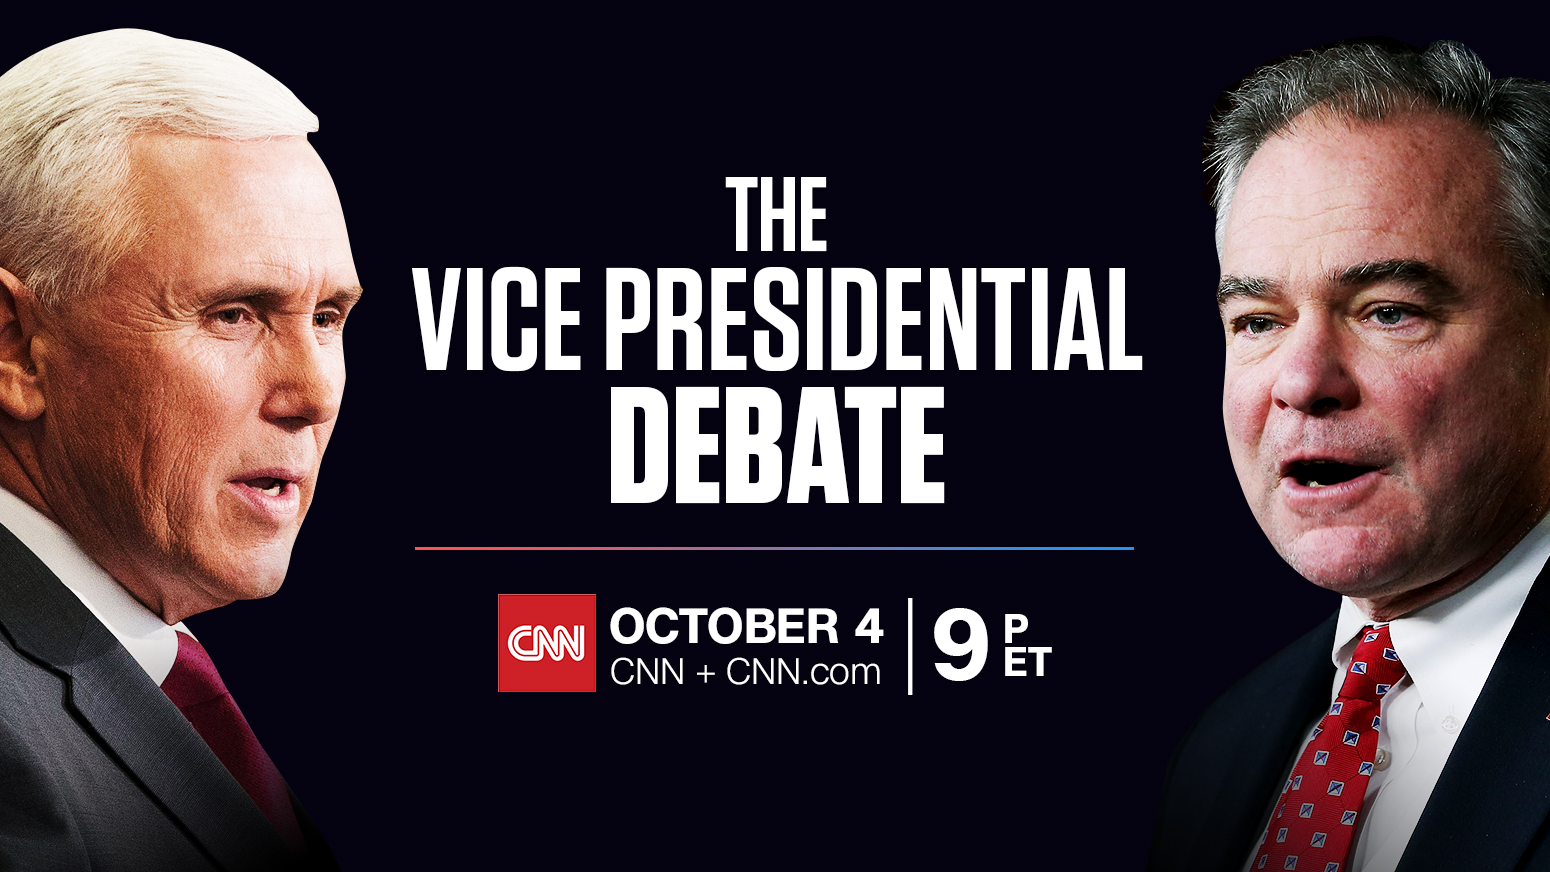 CNN To Live Stream The Vice Presidential Debate on CNN.com